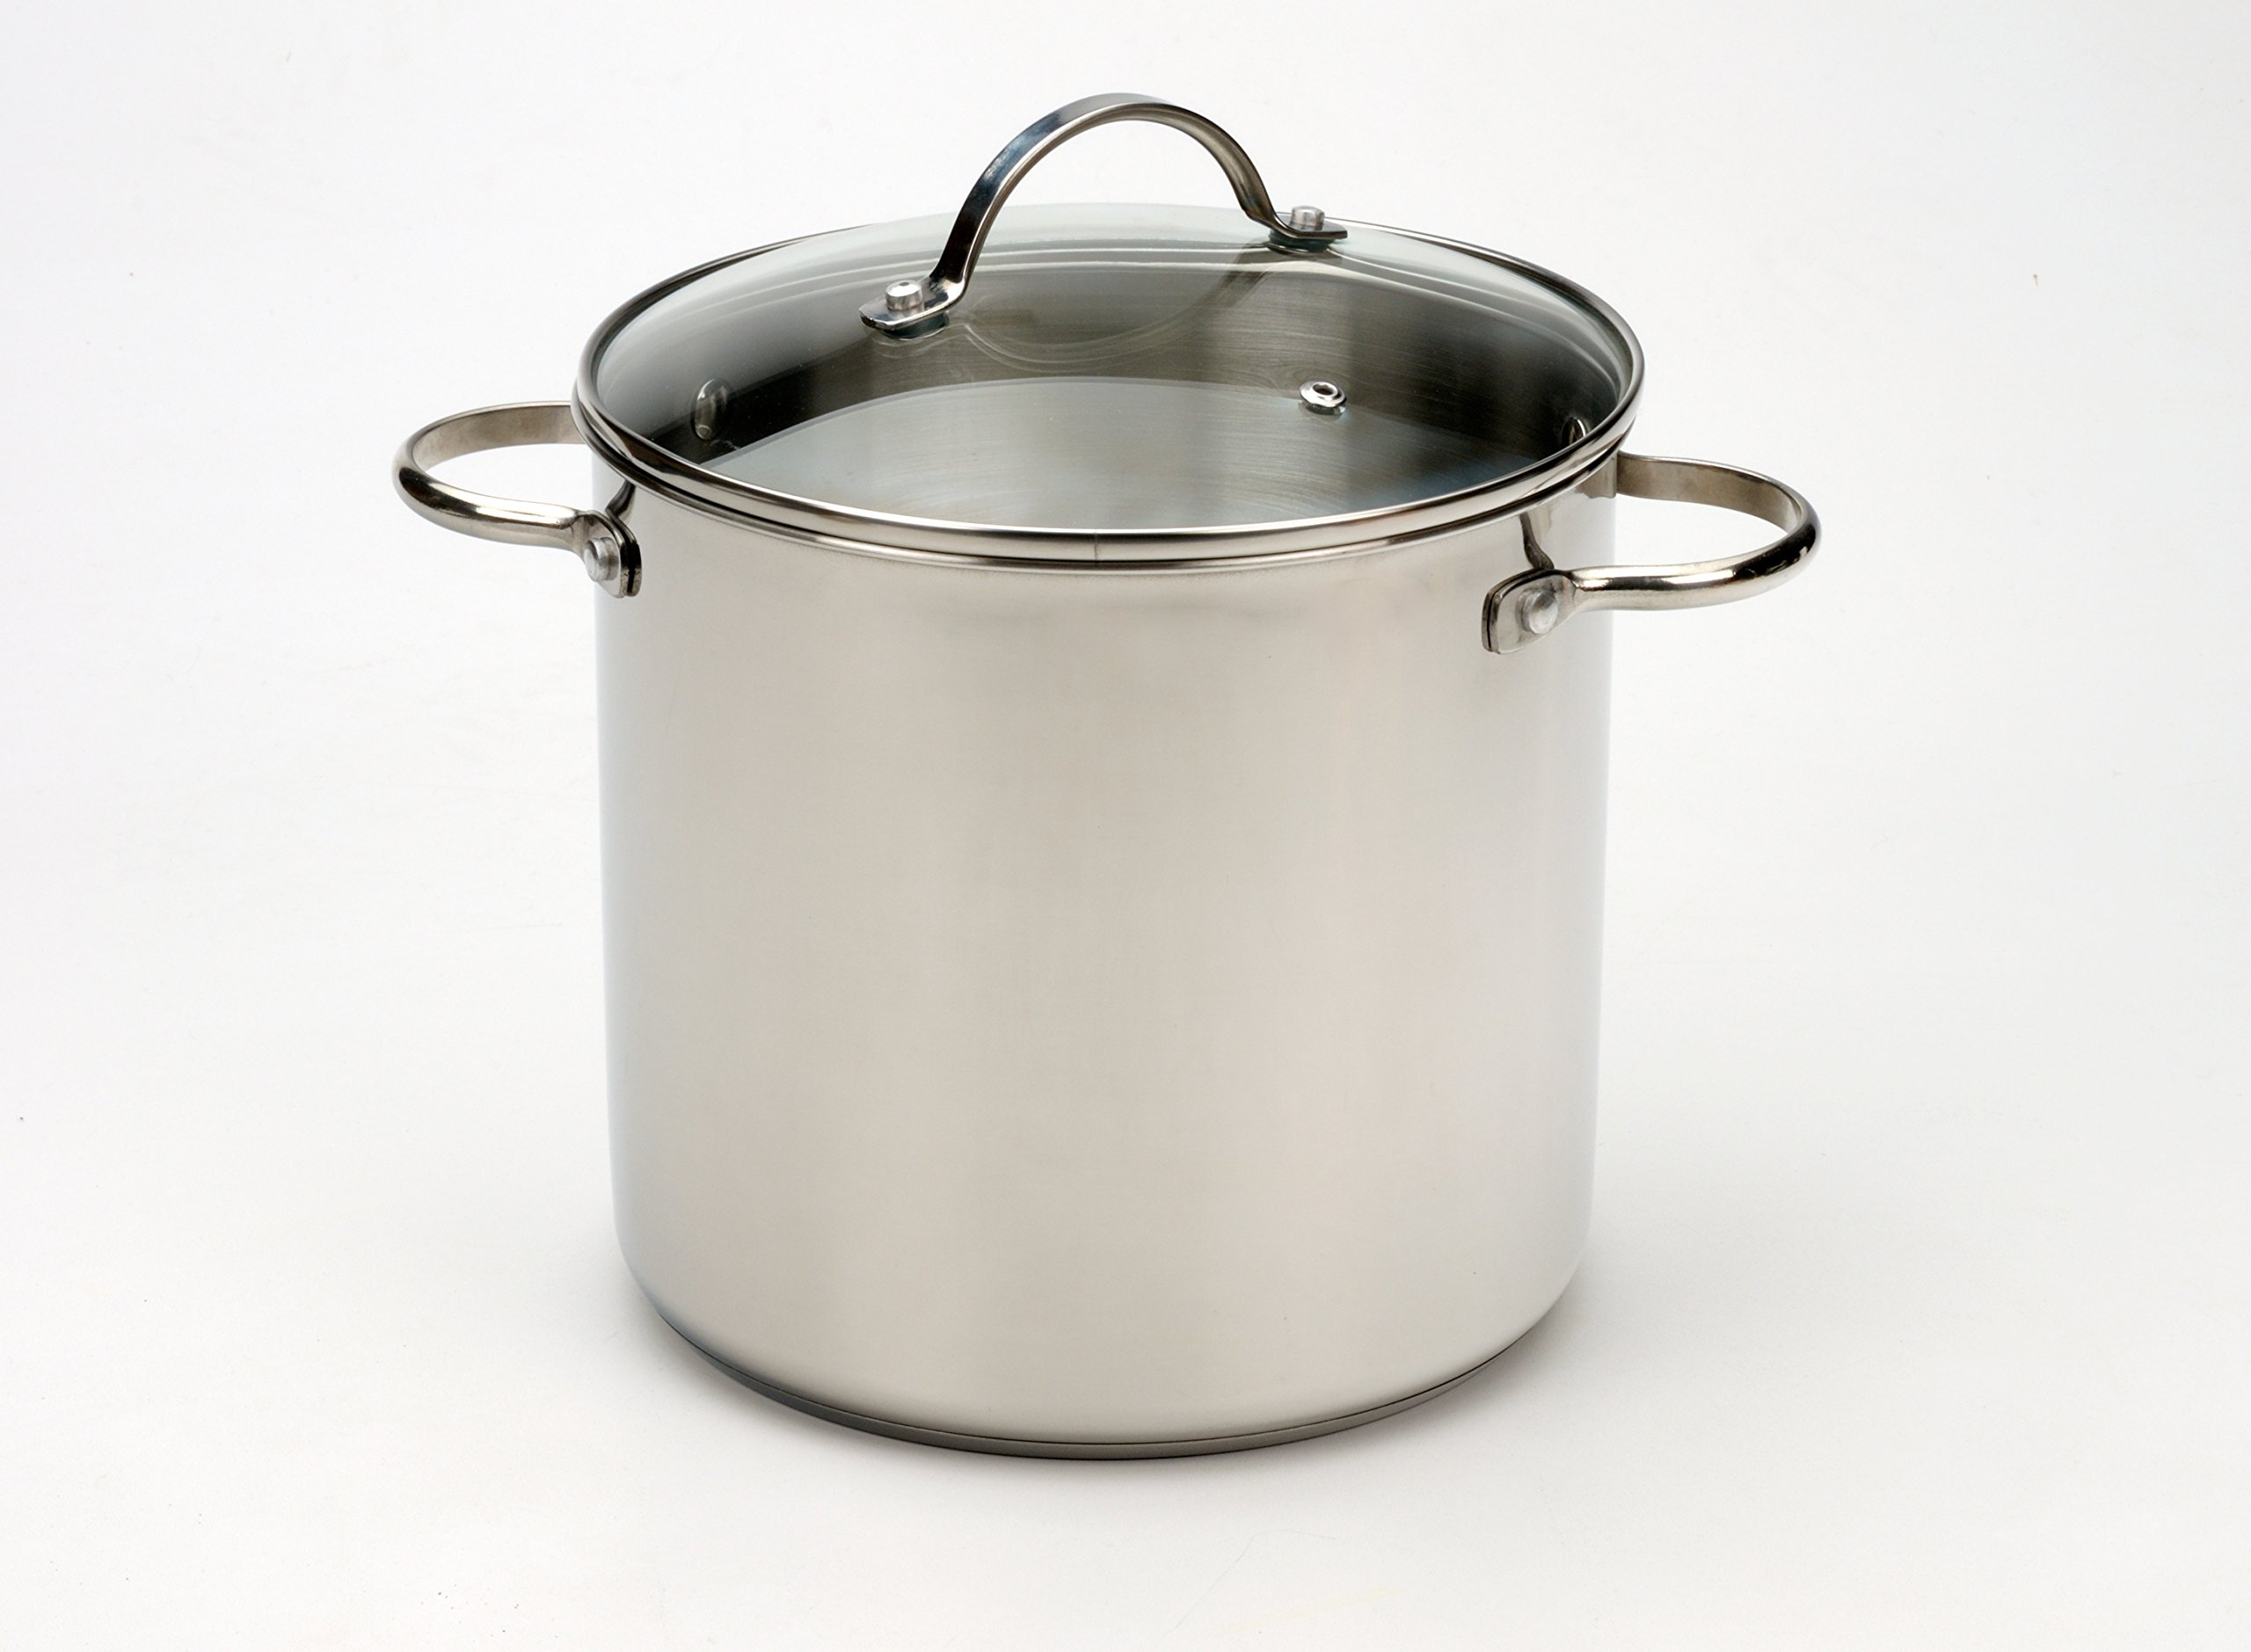 RSVP International TGP-8IN Stainless Steel Stock Pot, One Size, Multi Color by RSVP International